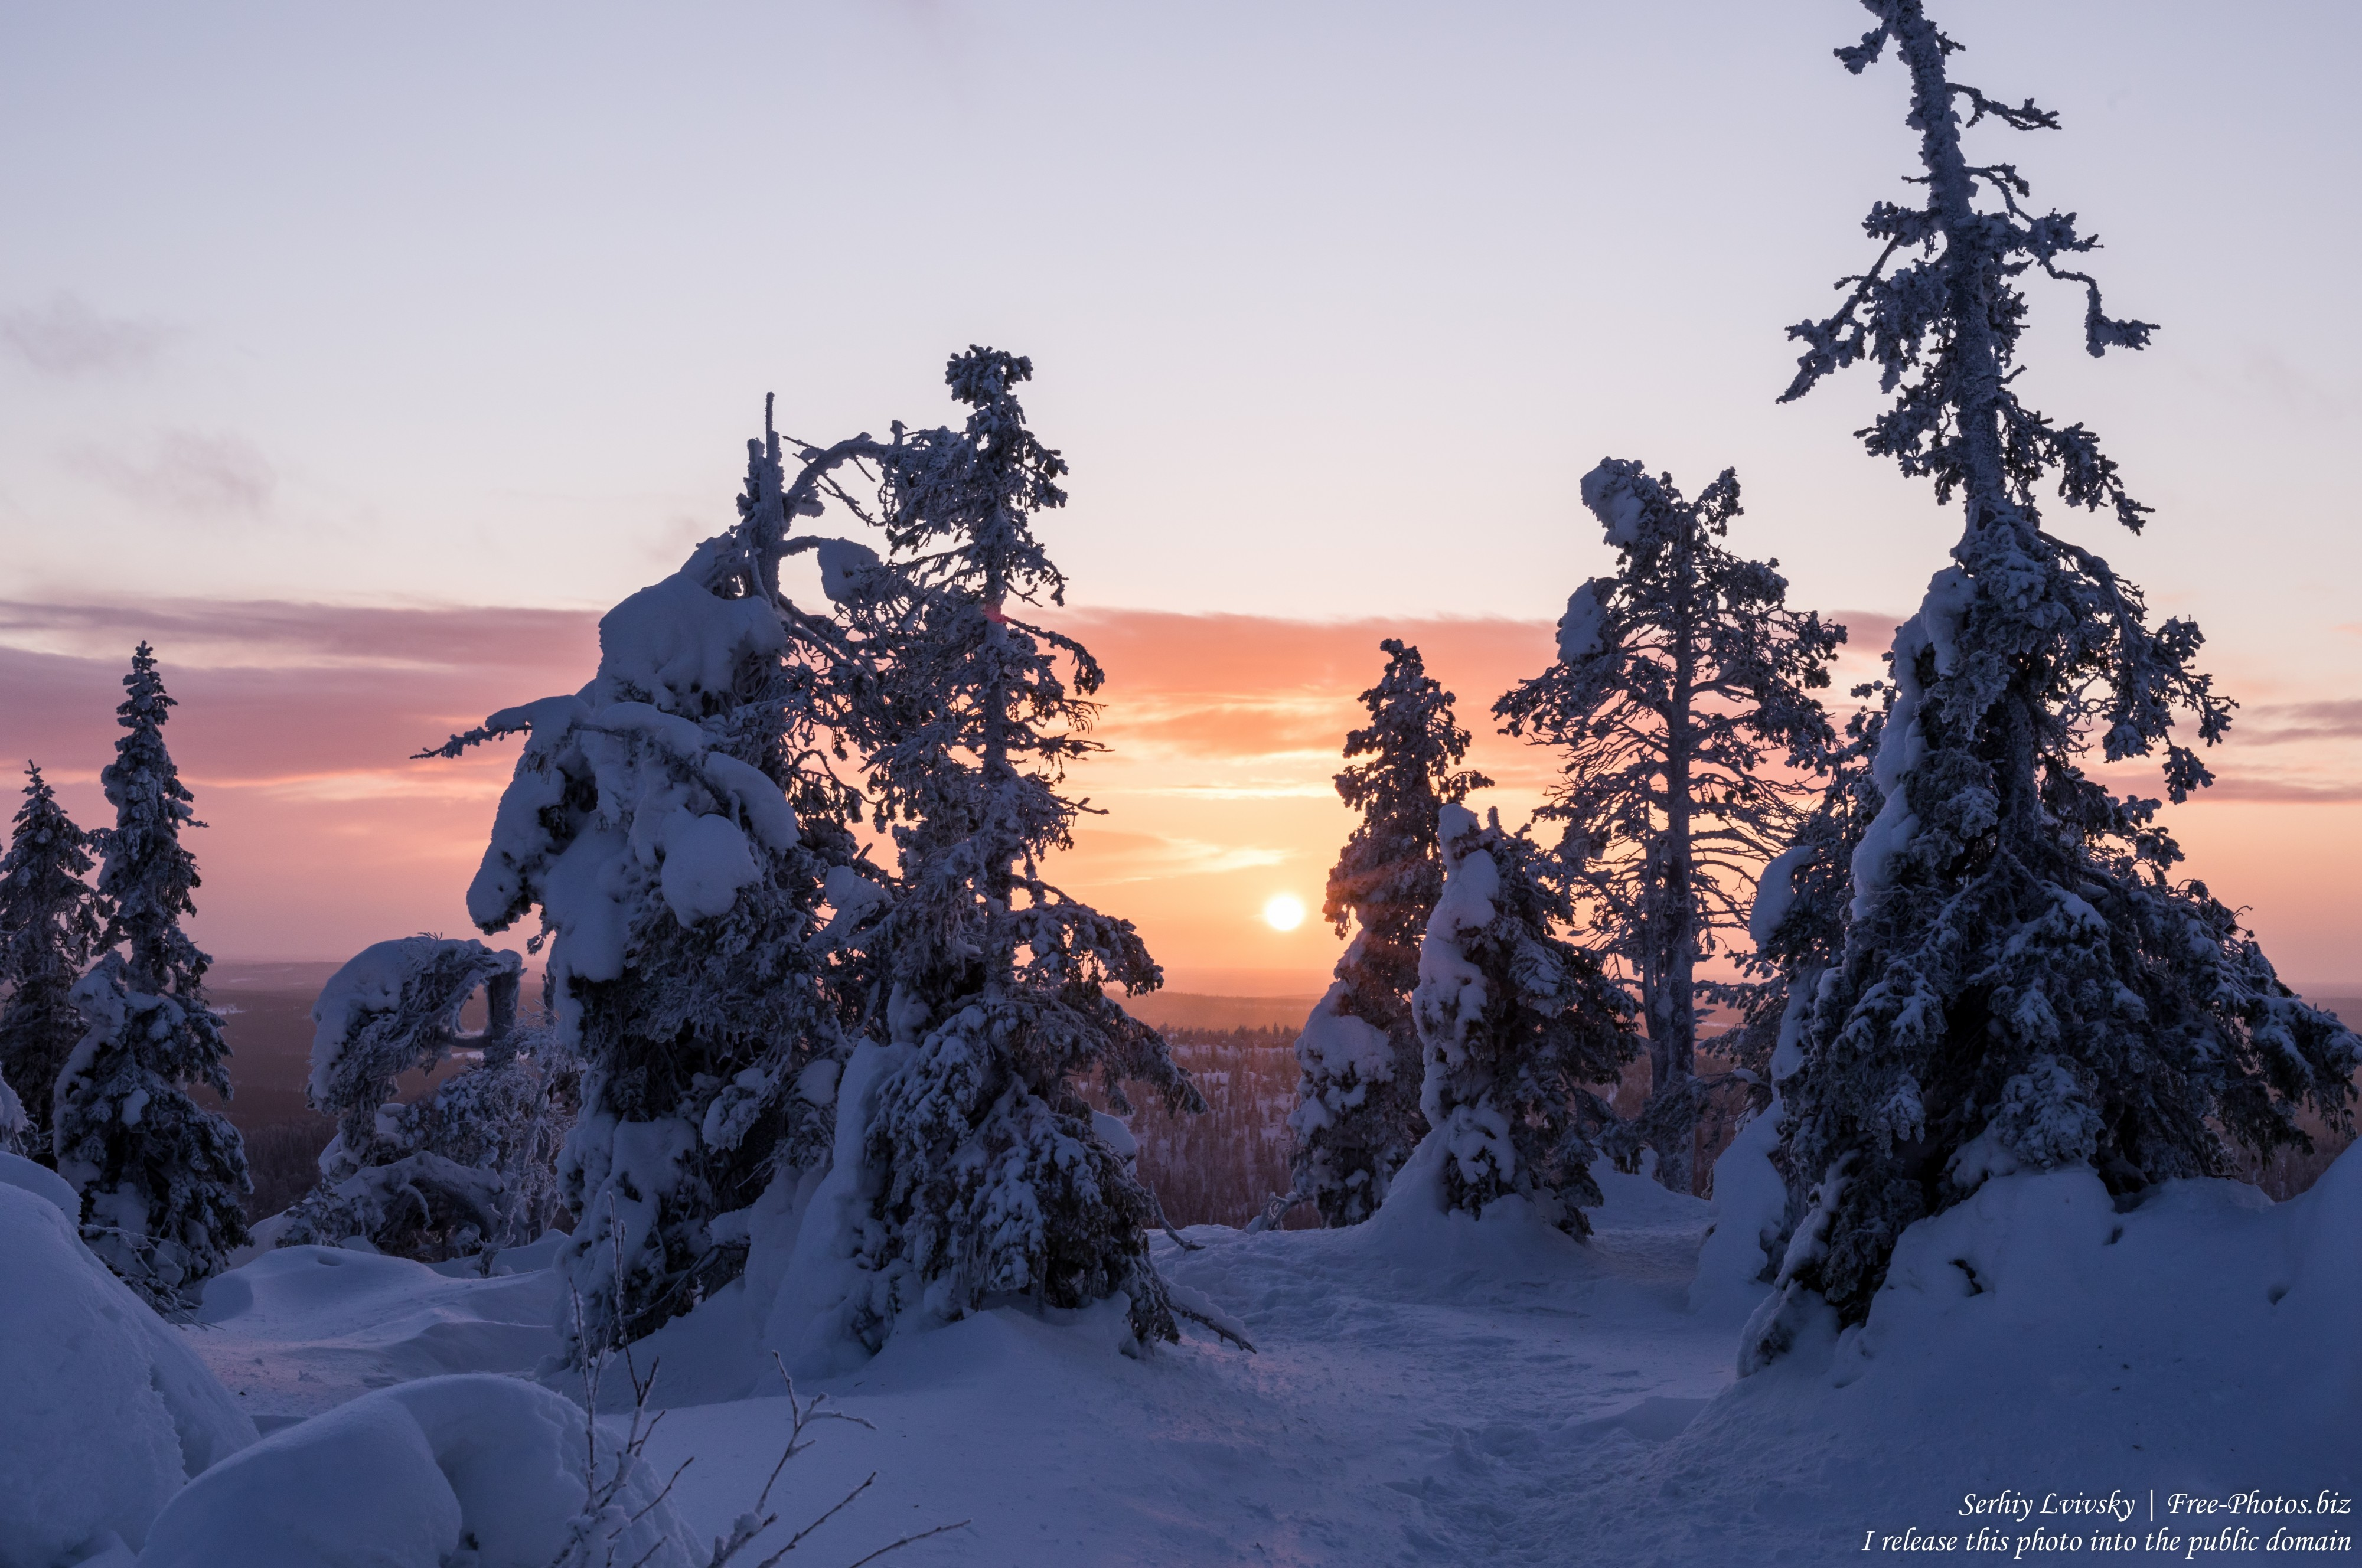 Iso-Syote, Finland, photographed in January 2020 by Serhiy Lvivsky, picture 7